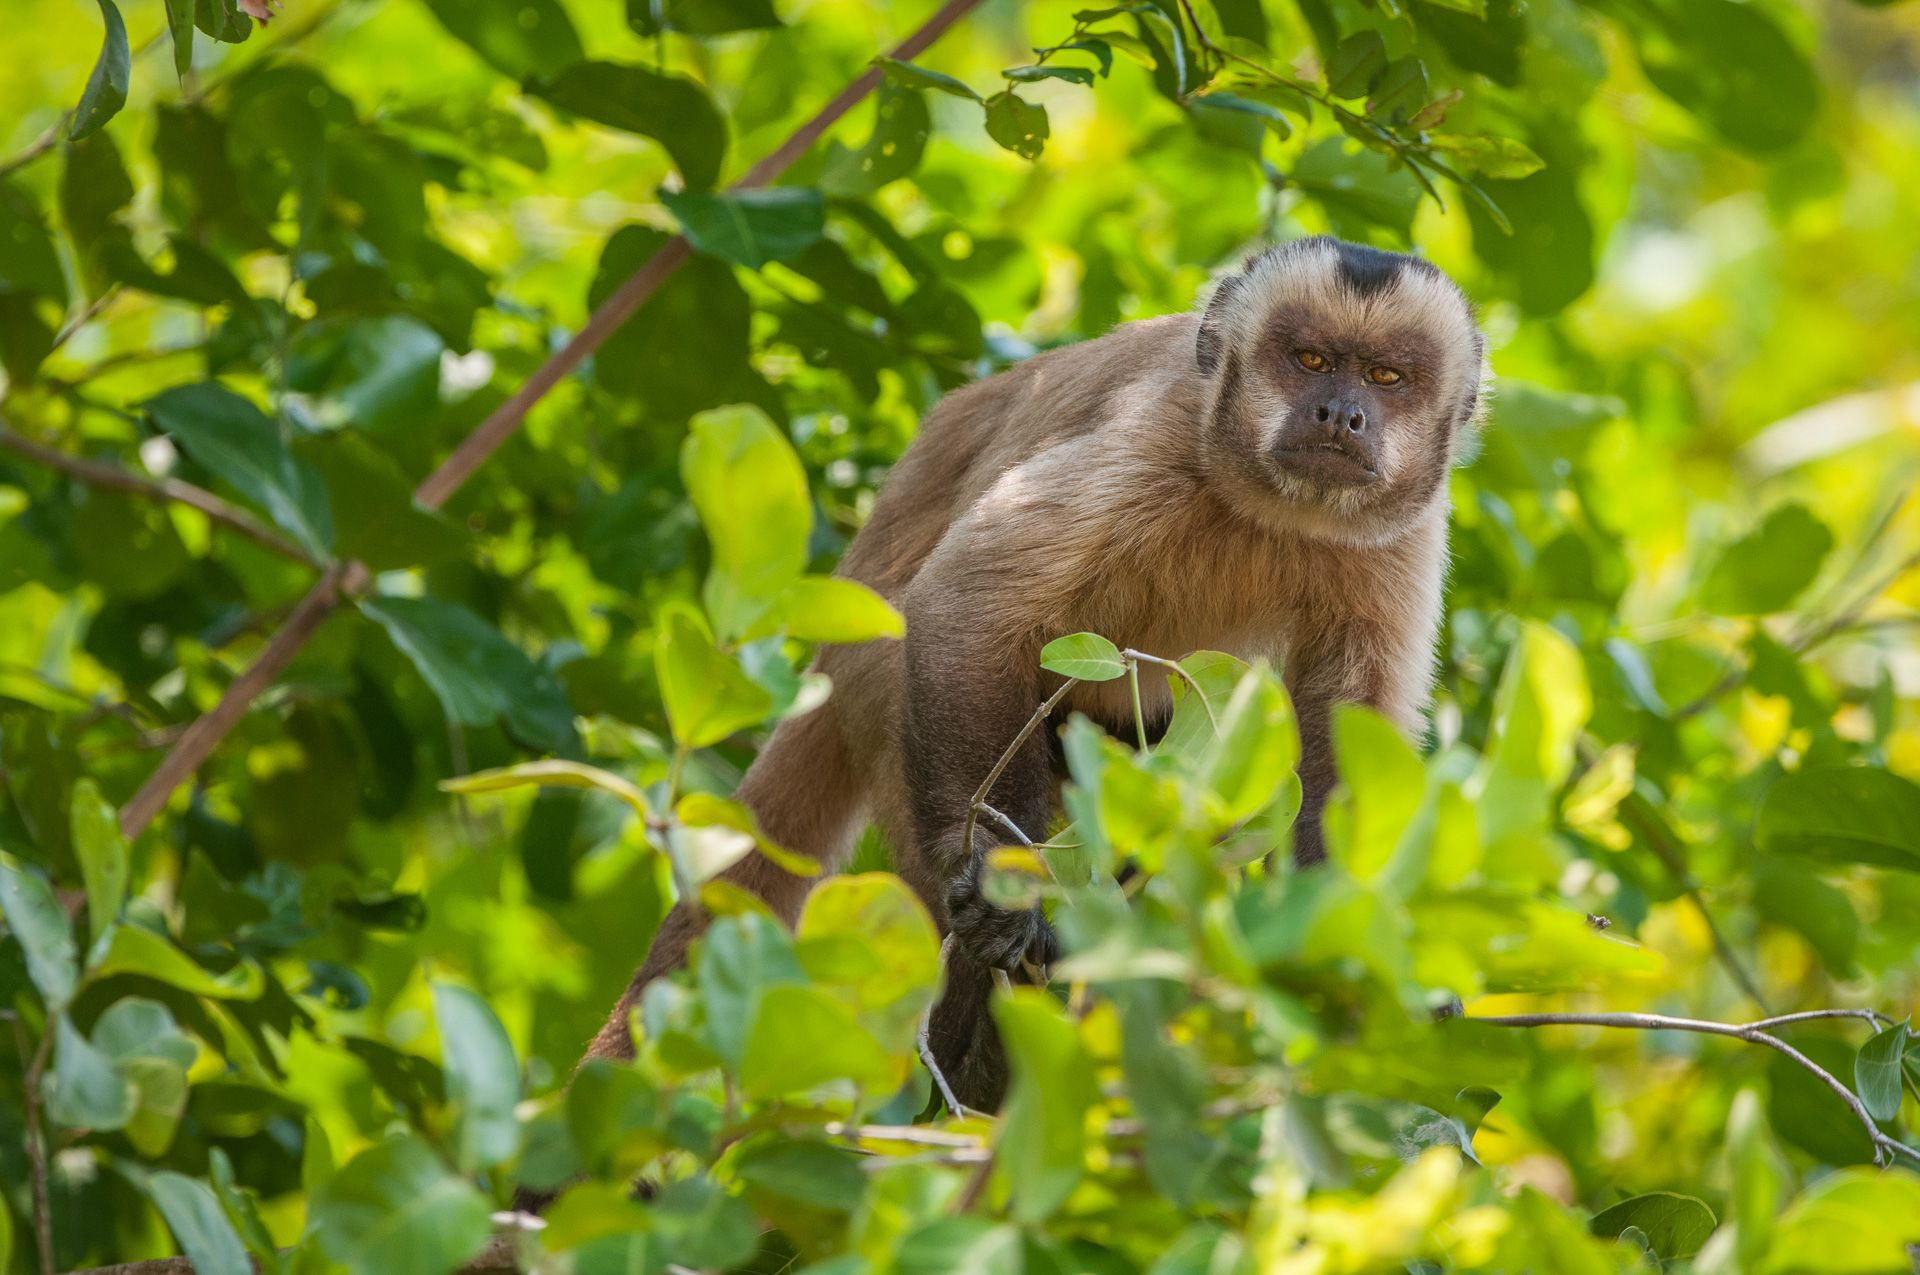 Find This Pin And More On Primates